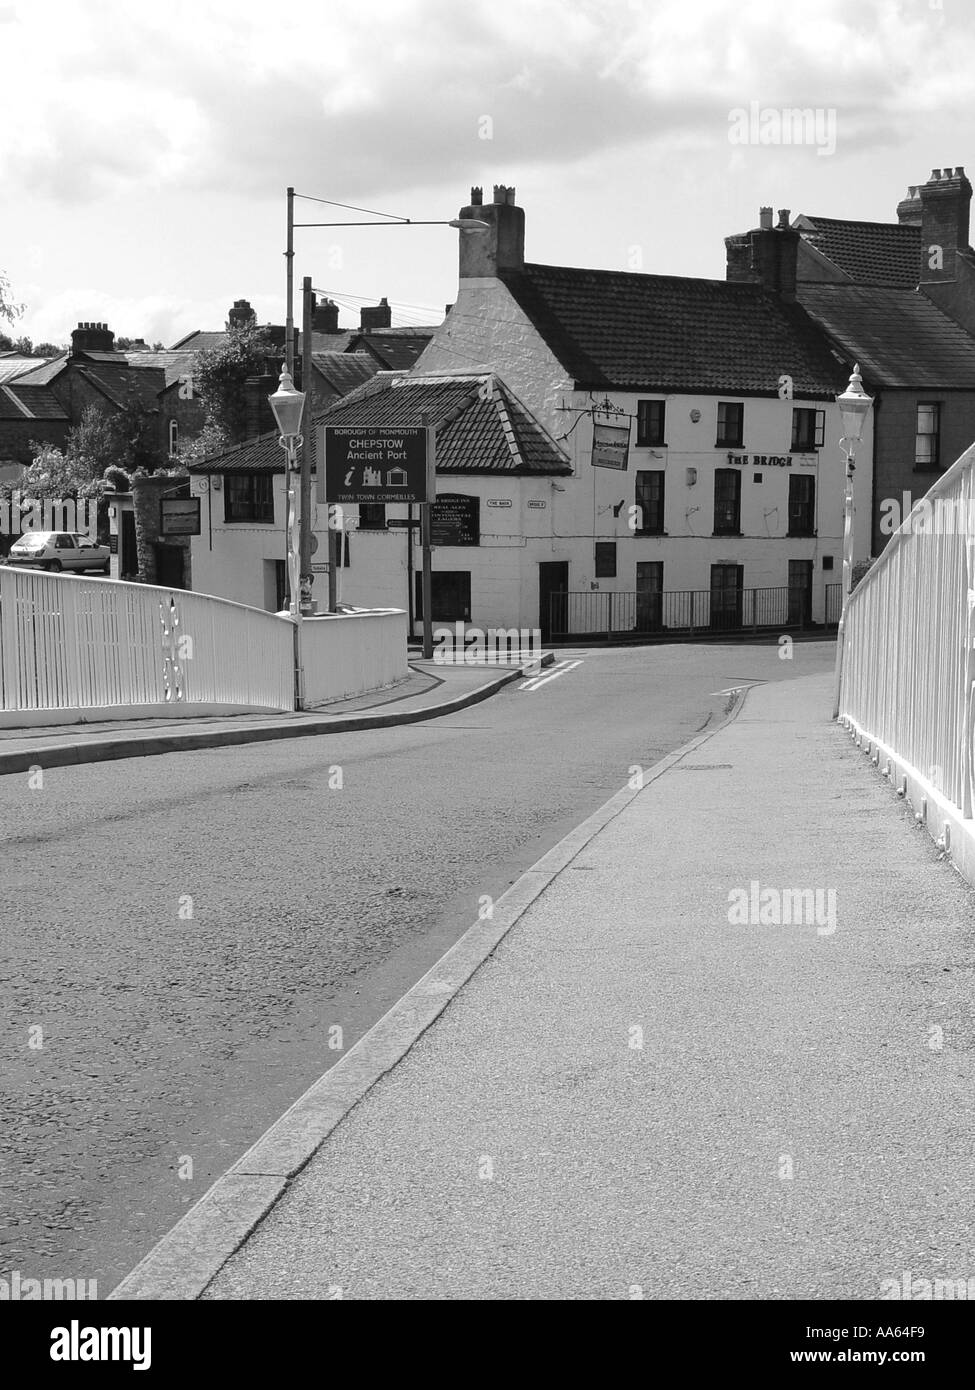 Chepstow South Wales GB UK 2003 - Stock Image